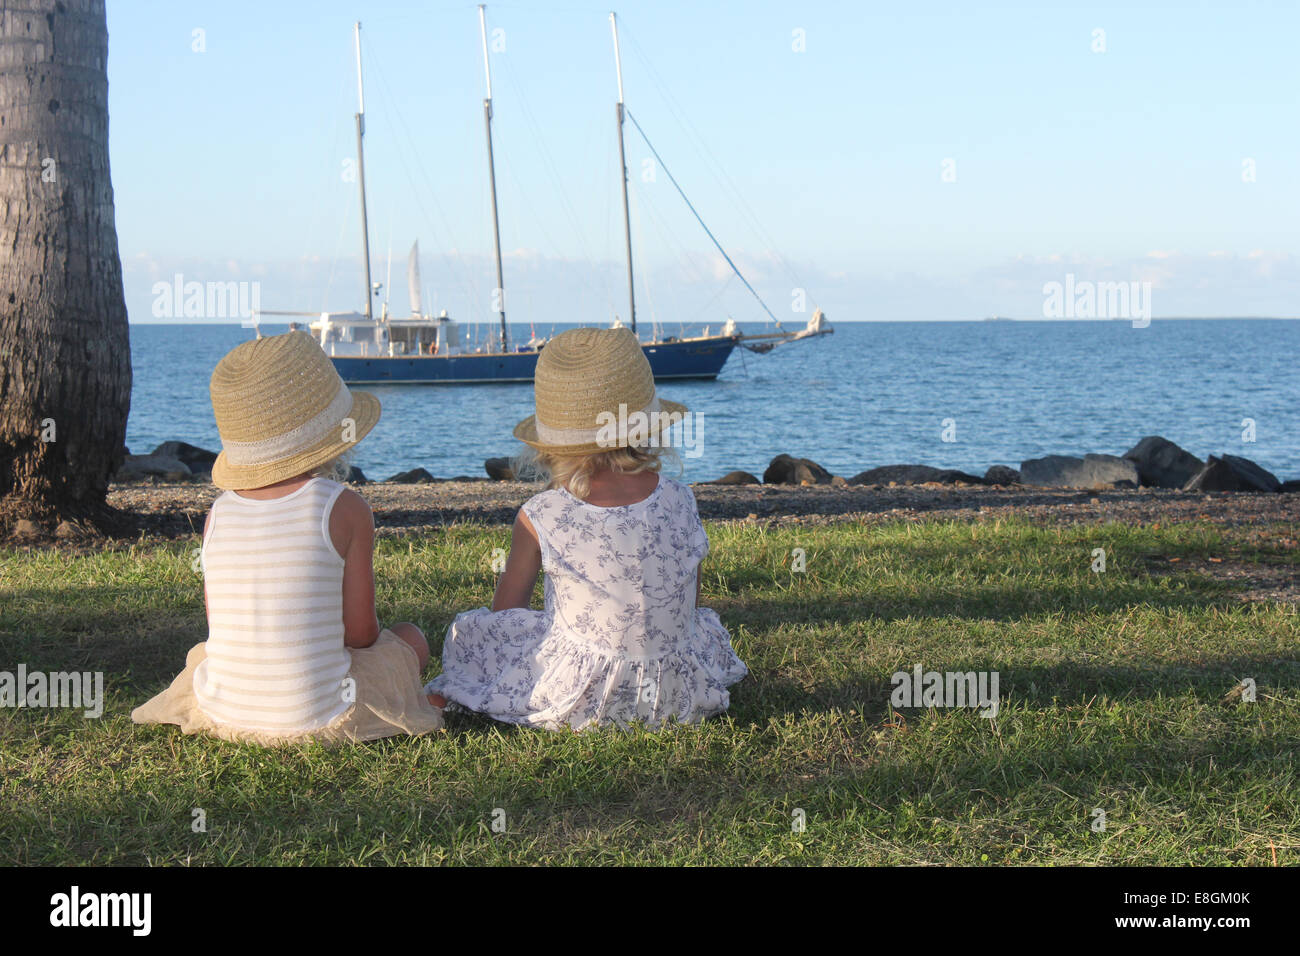 Two girls sitting on grass looking at boat, Port Douglas, Queensland, Australia - Stock Image